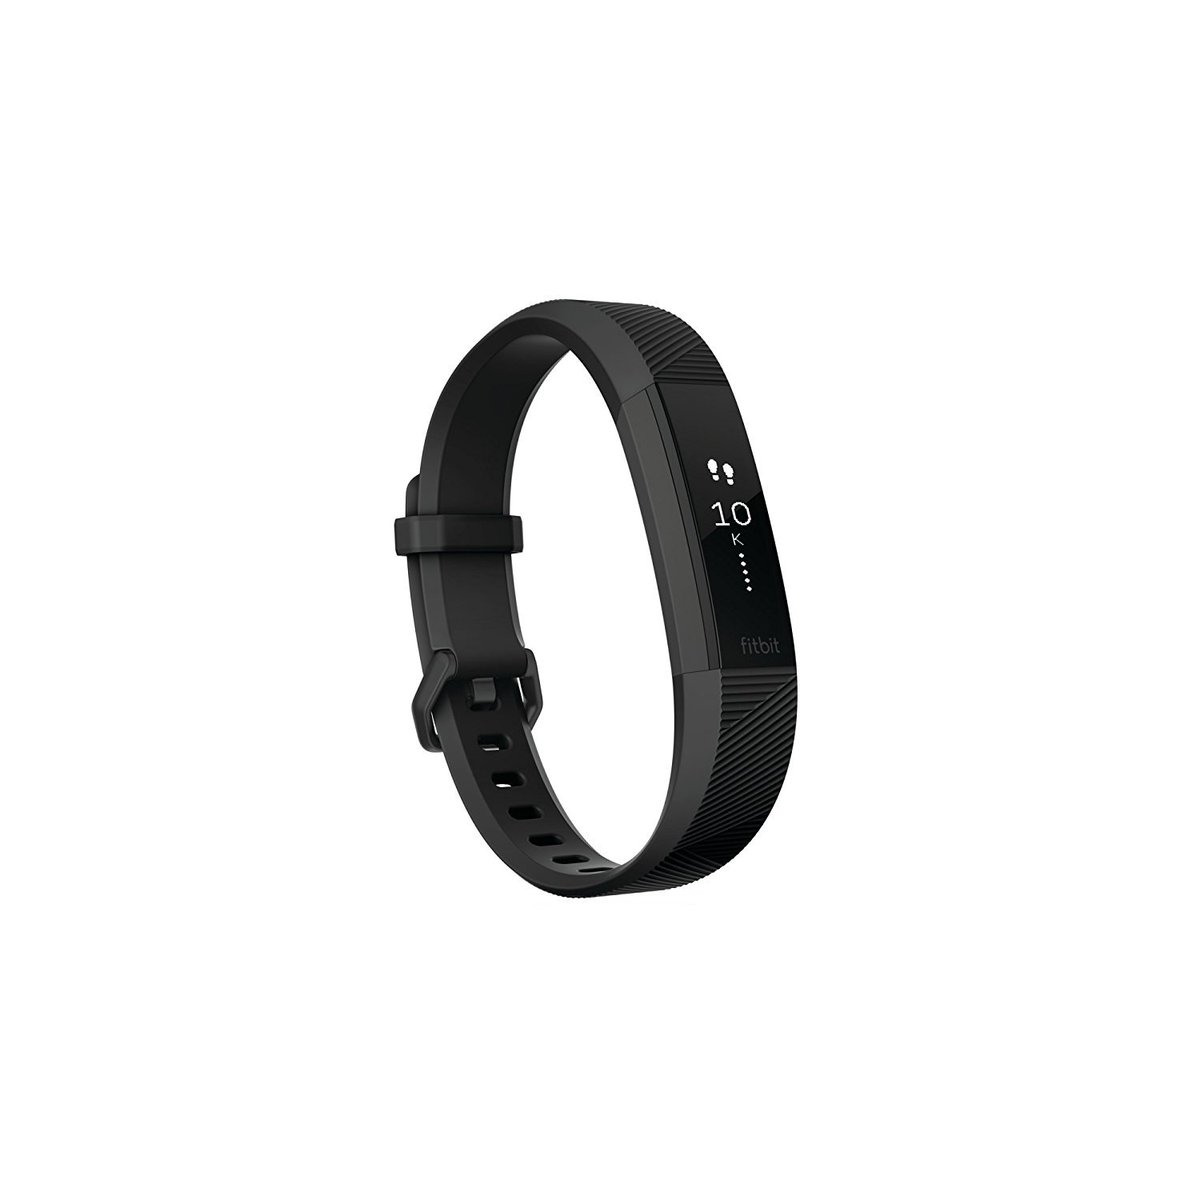 Get the power of continuous heart rate in Fitbit's slimmest design yet-all day, during workouts and beyond ~~> https://amzn.to/2IlHtt8  <~~ reTweet please health #fitness #workout #wellness